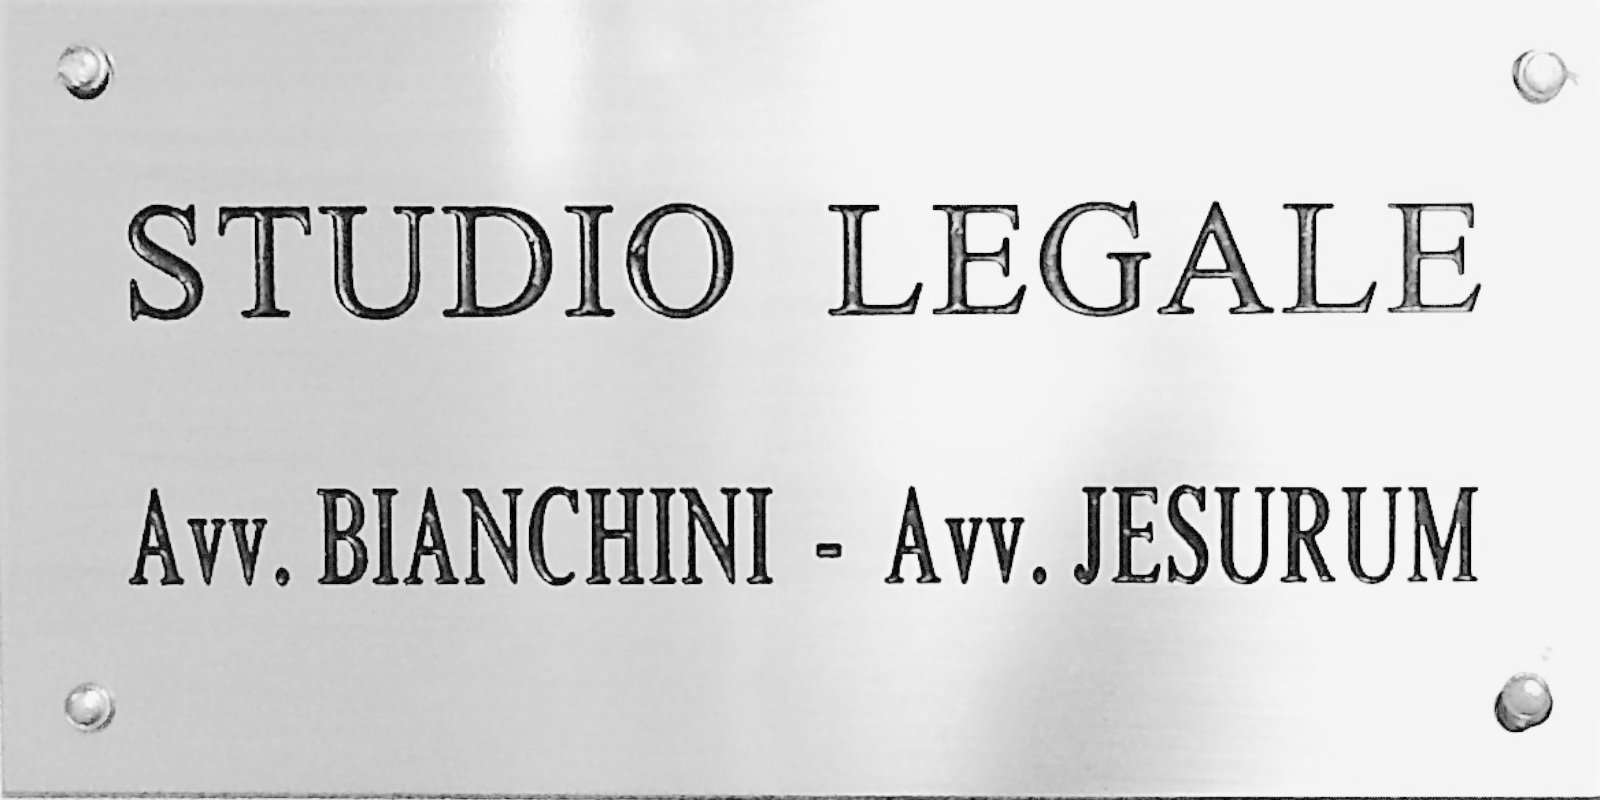 Targa studio legale Bianchini Jesurum